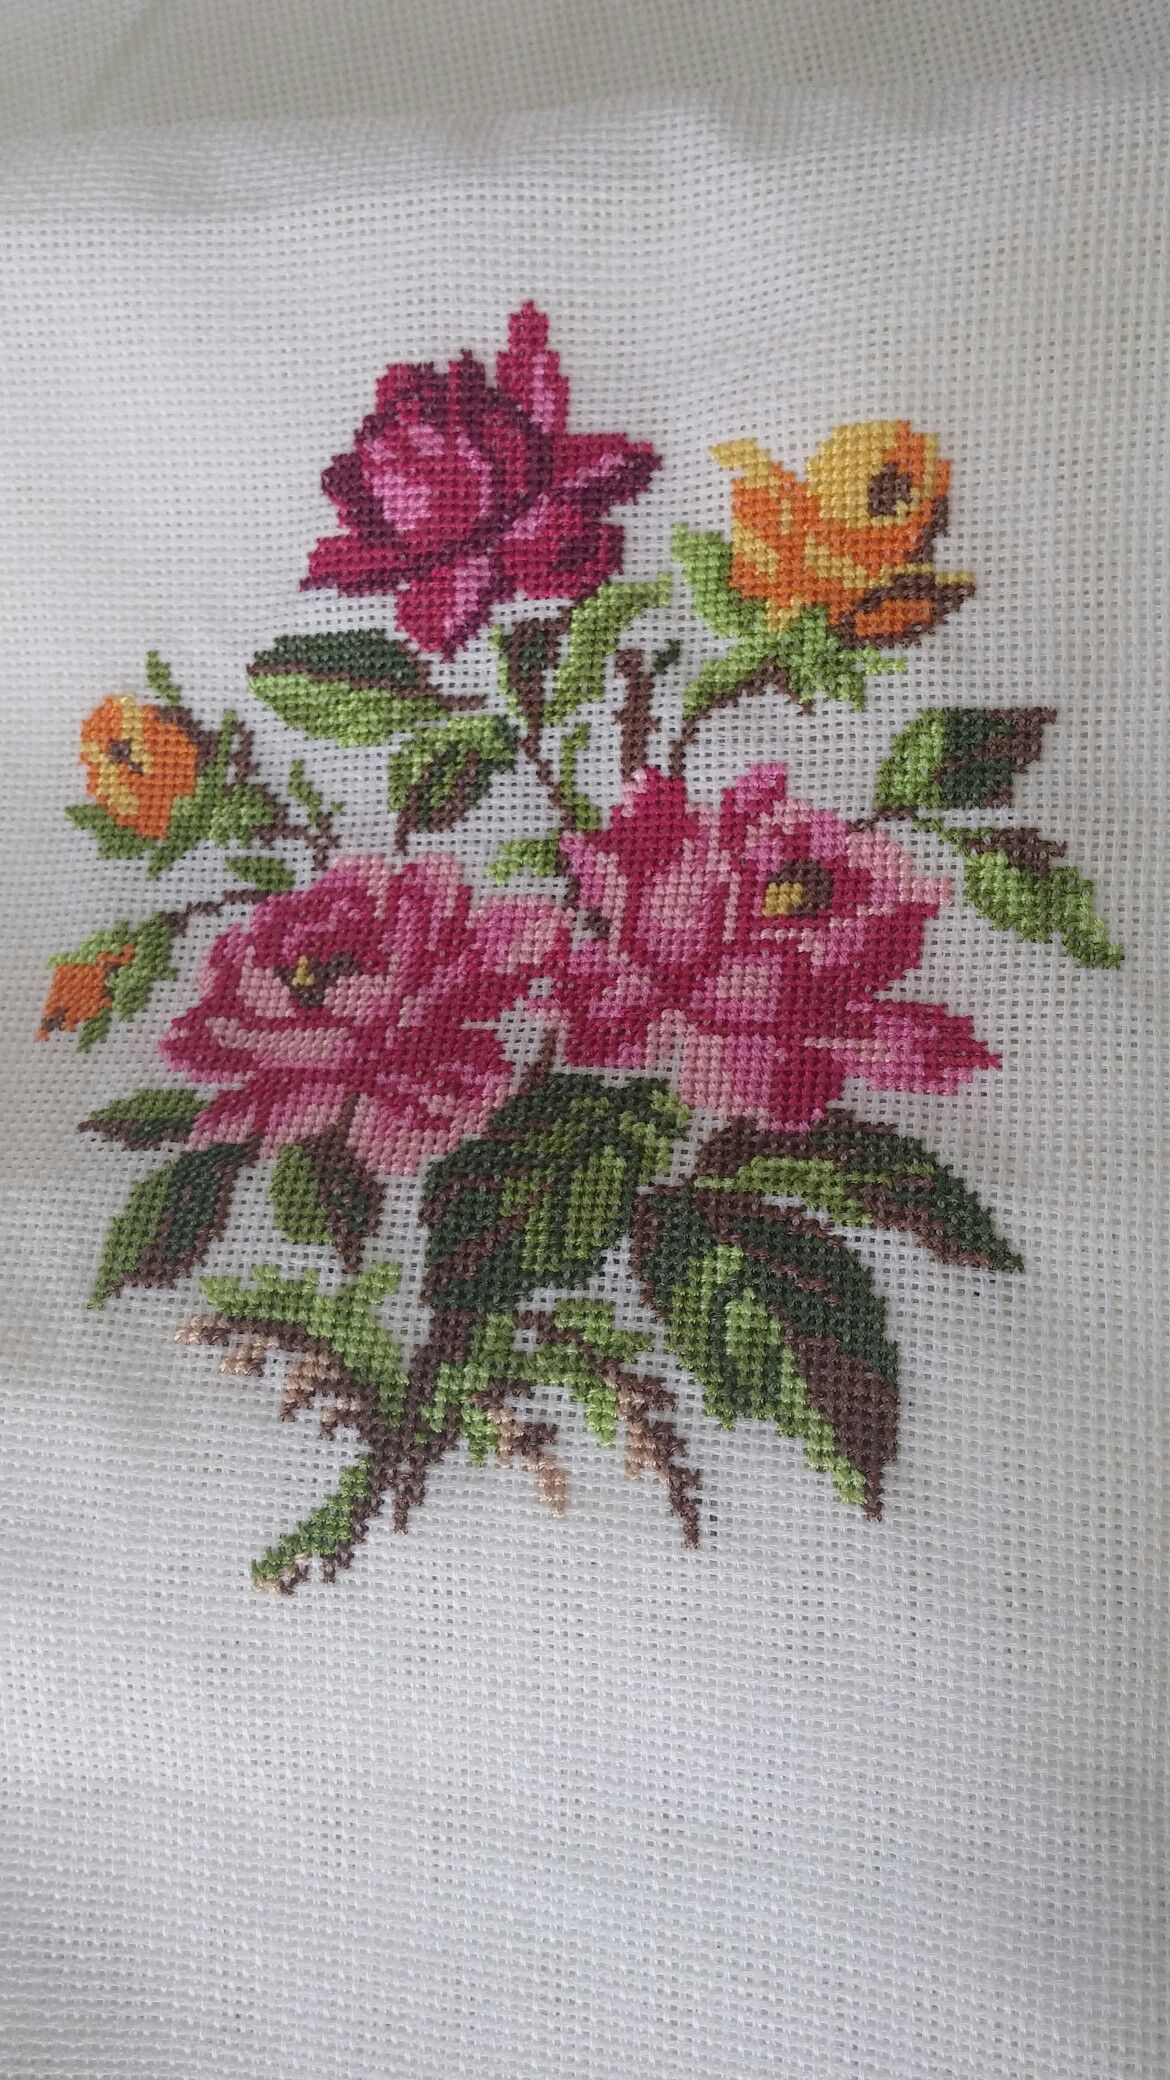 Pin by on bohcalarim pinterest cross stitch stitch and embroidery